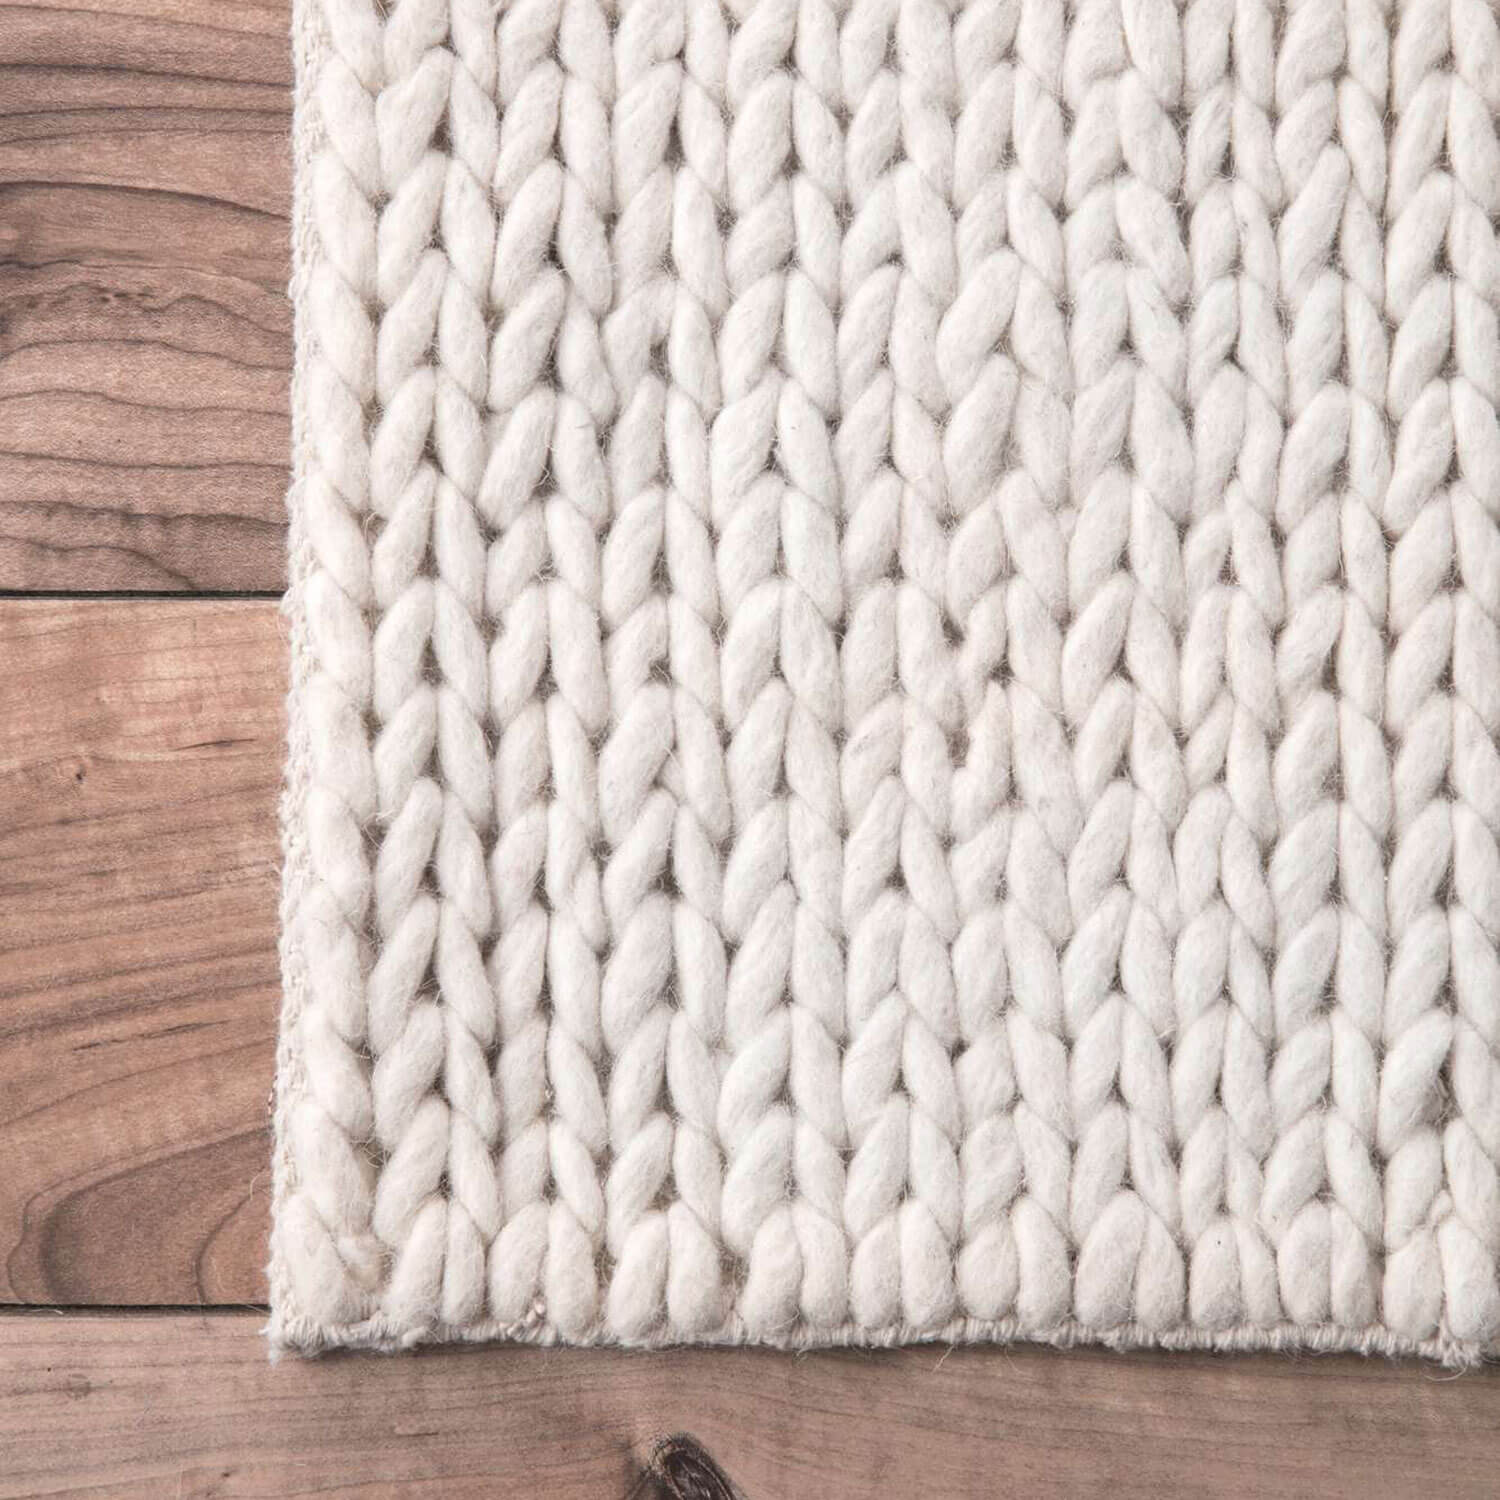 Cream Chunky Cable Area Rug - 2' 6